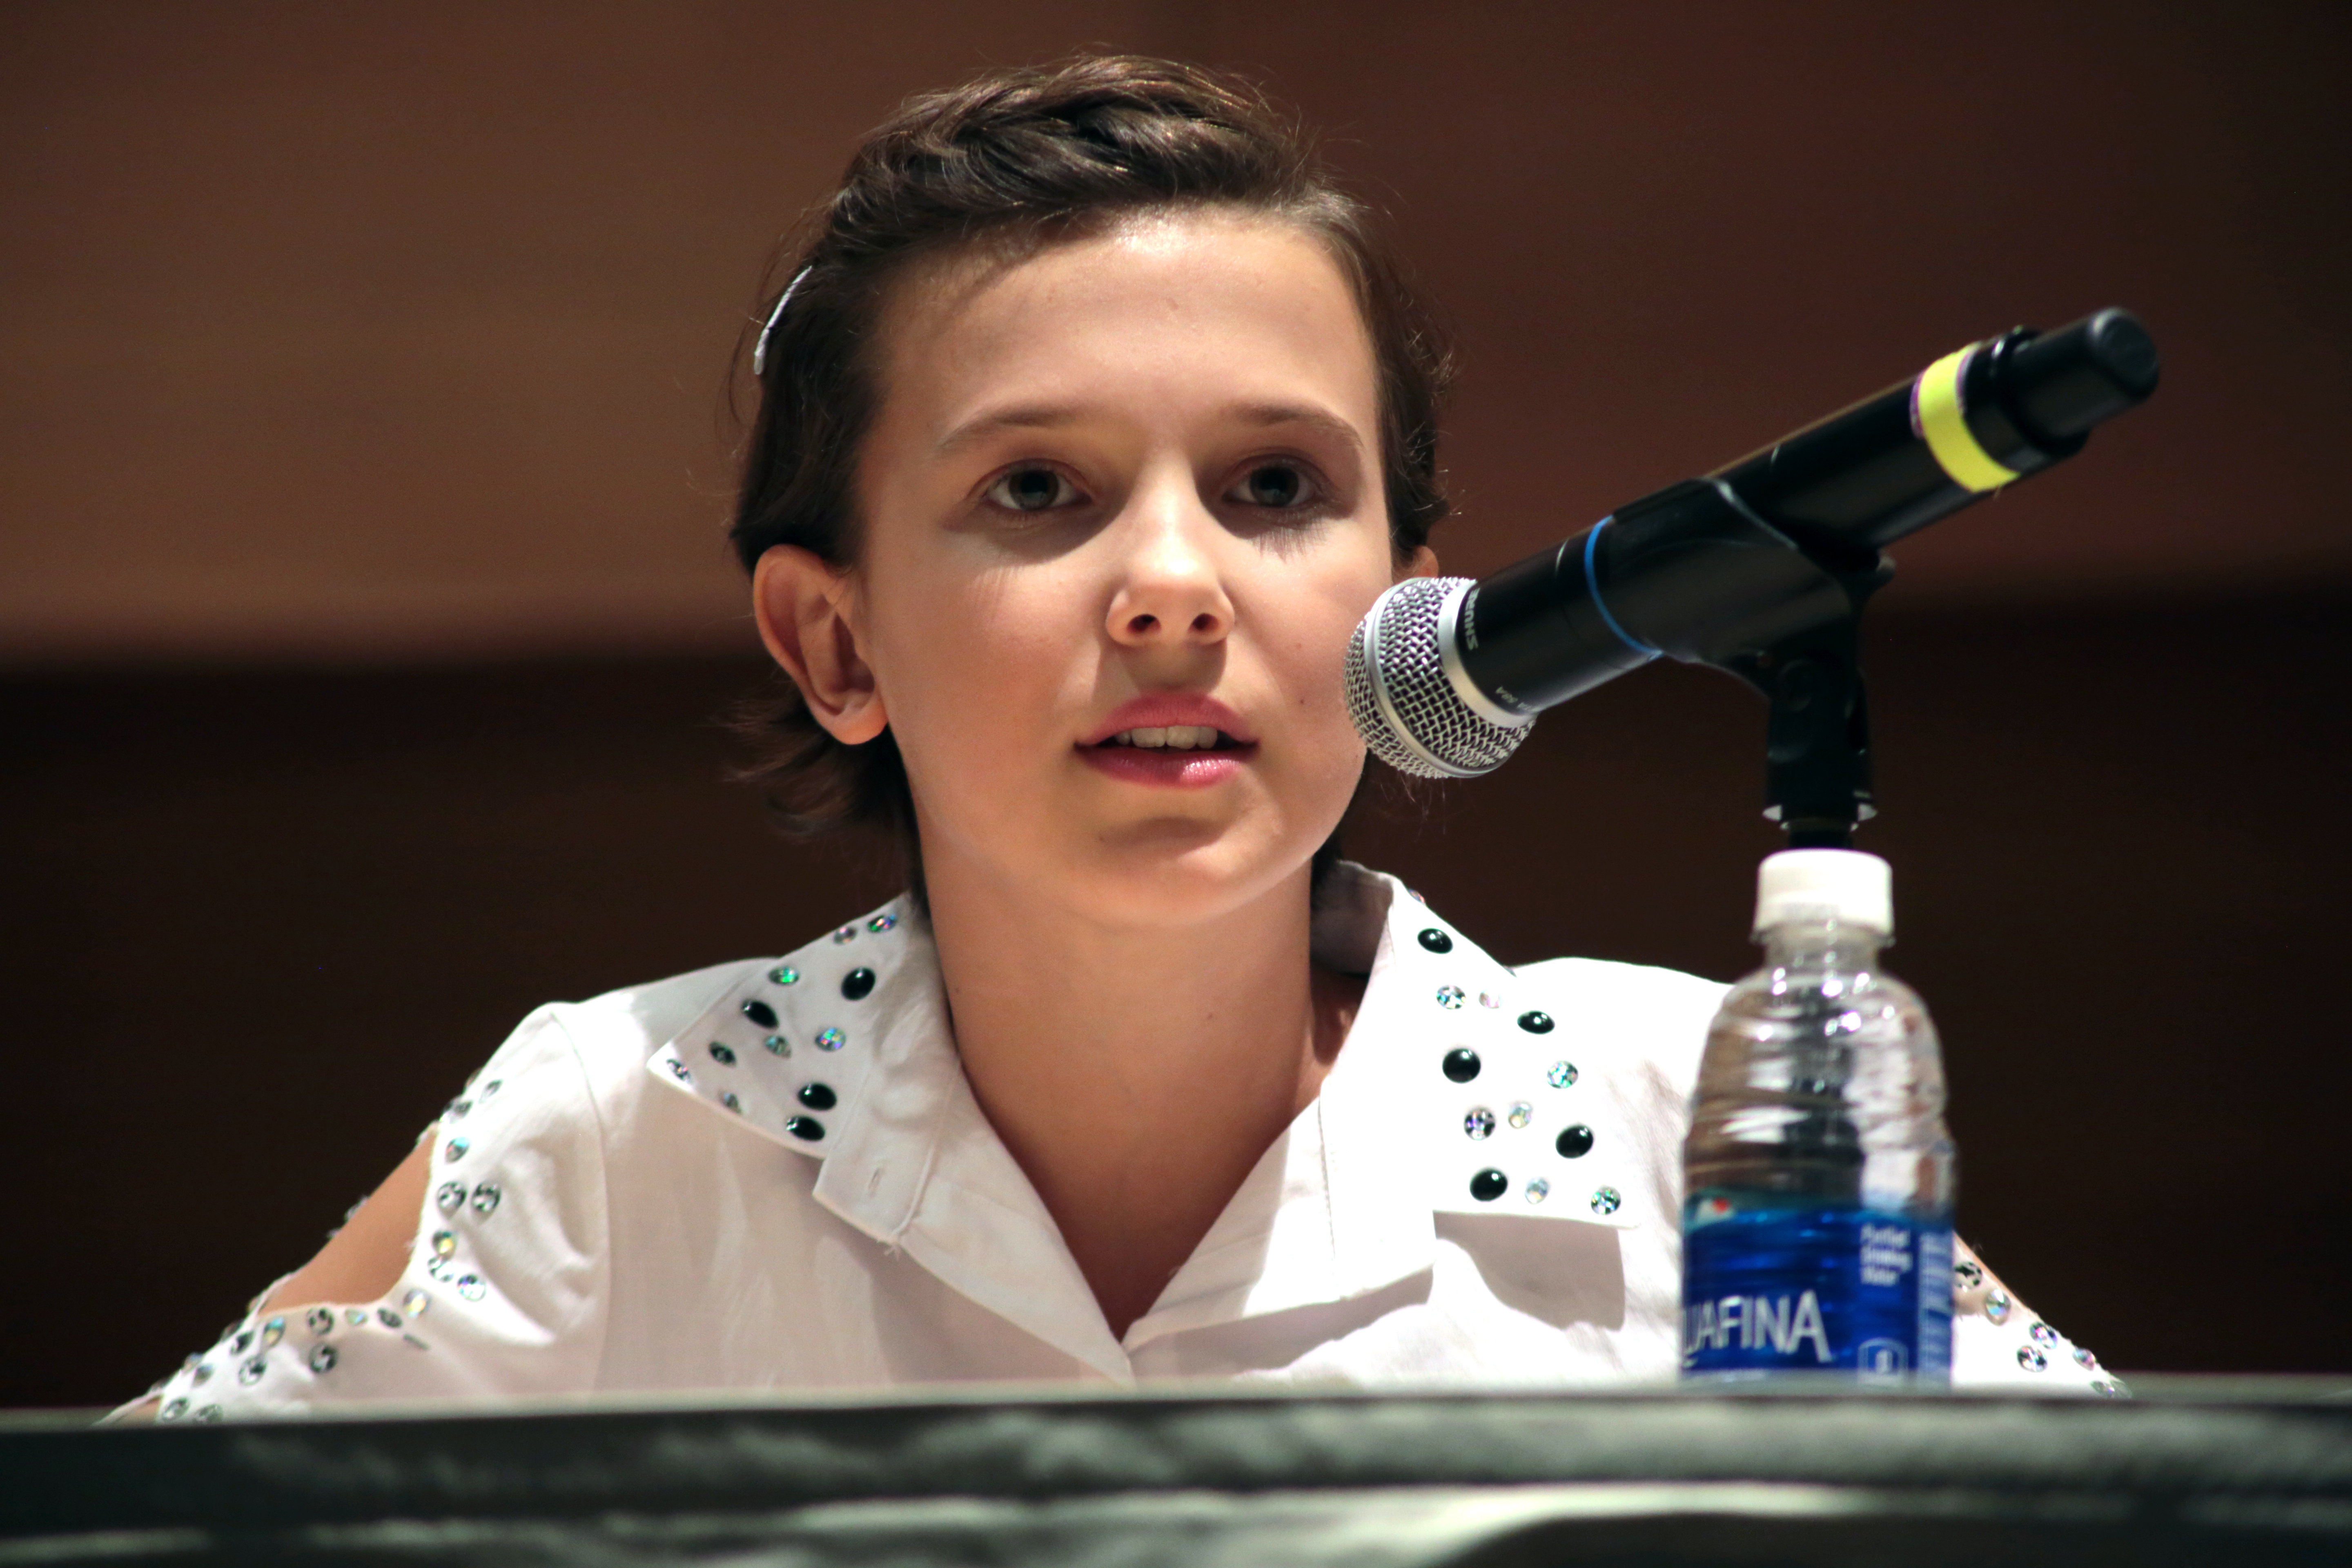 Forum on this topic: Fulvia Franco, millie-bobby-brown-born-2004/